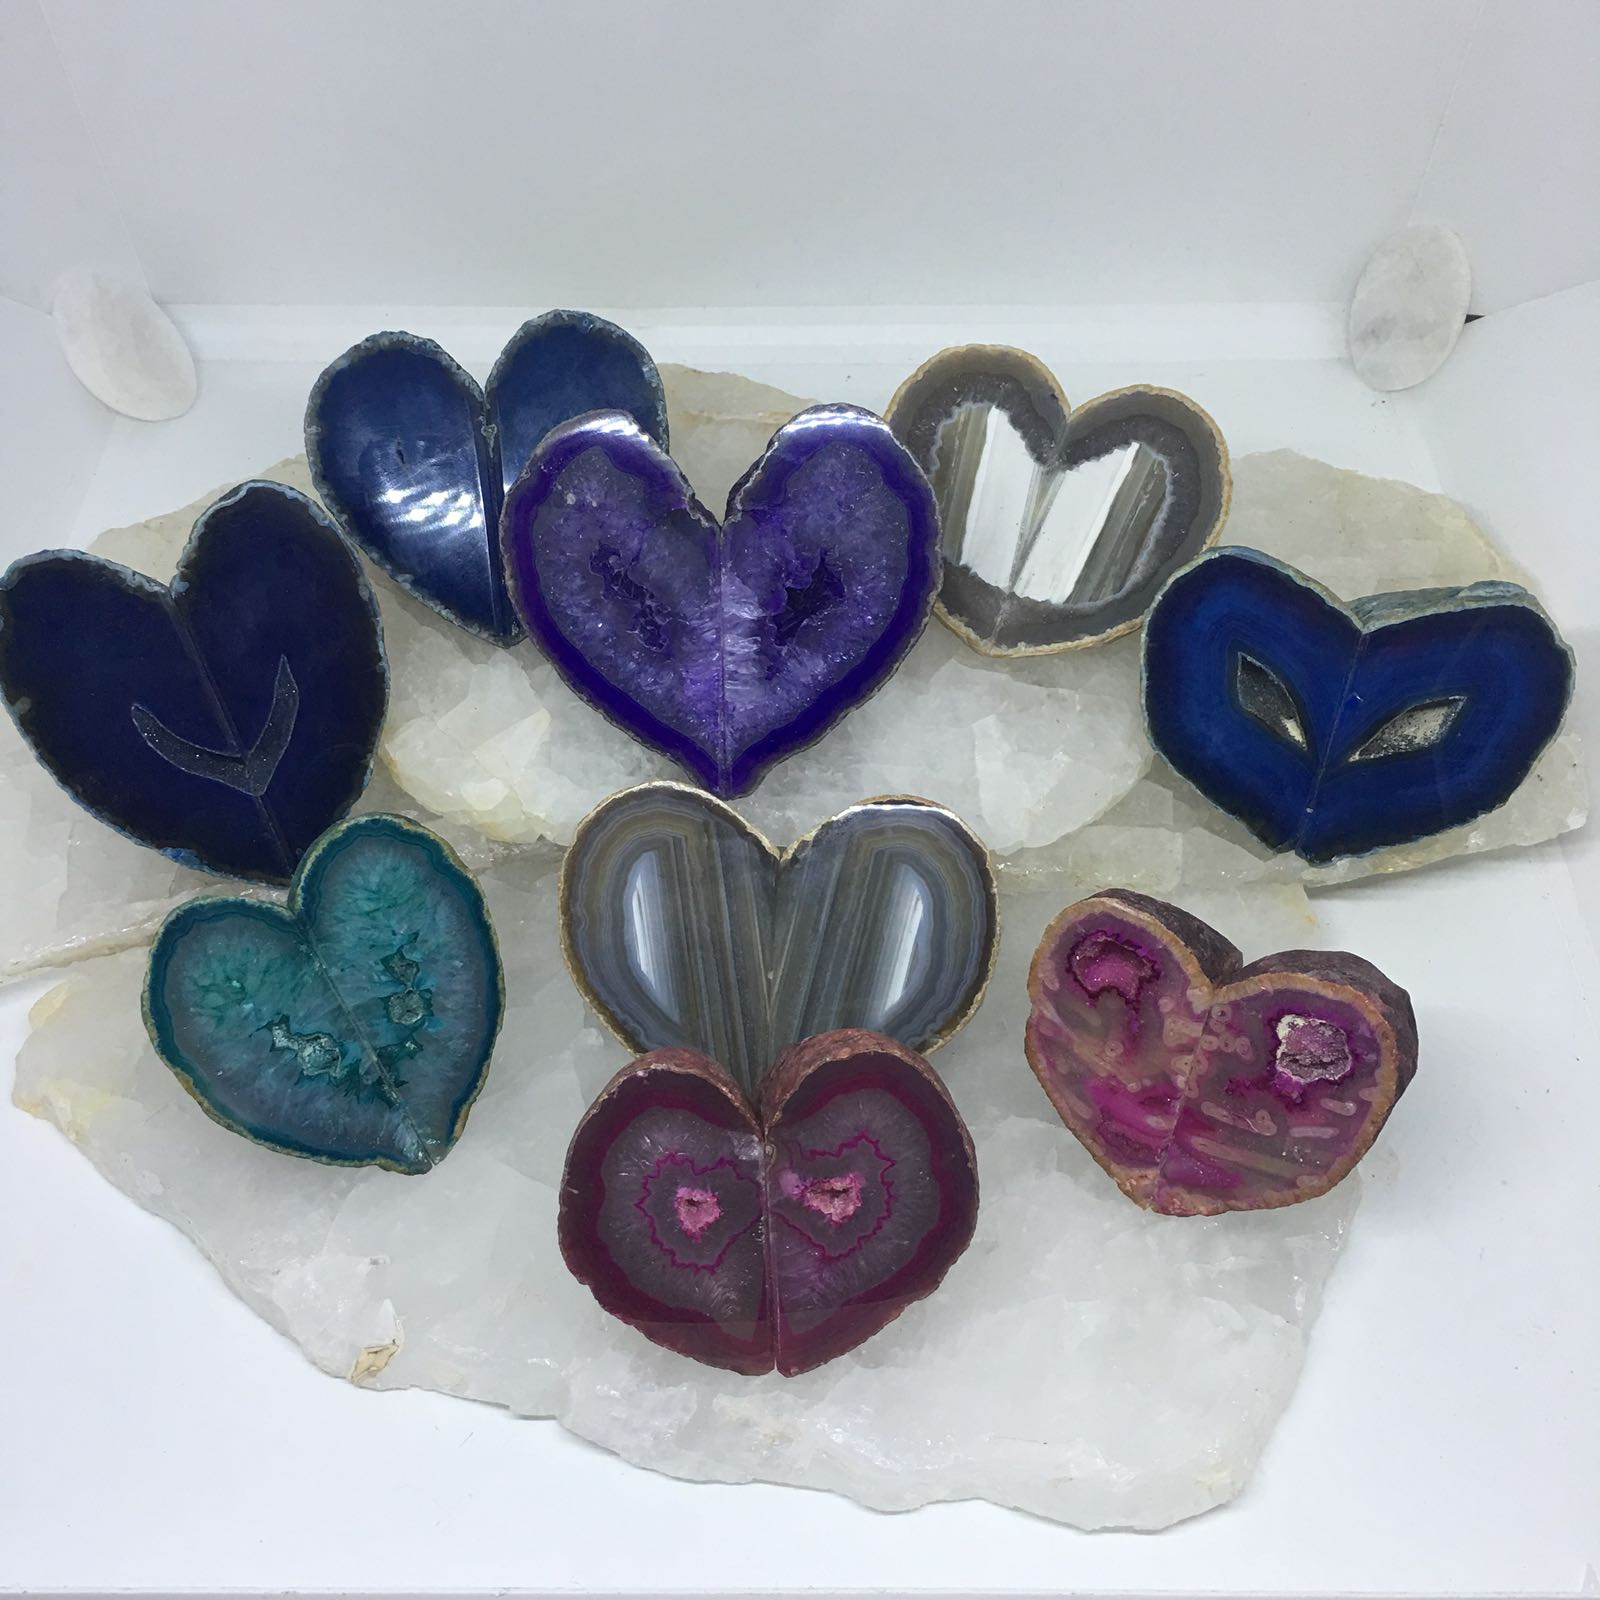 Stones from Uruguay - Dyed Agate Heart